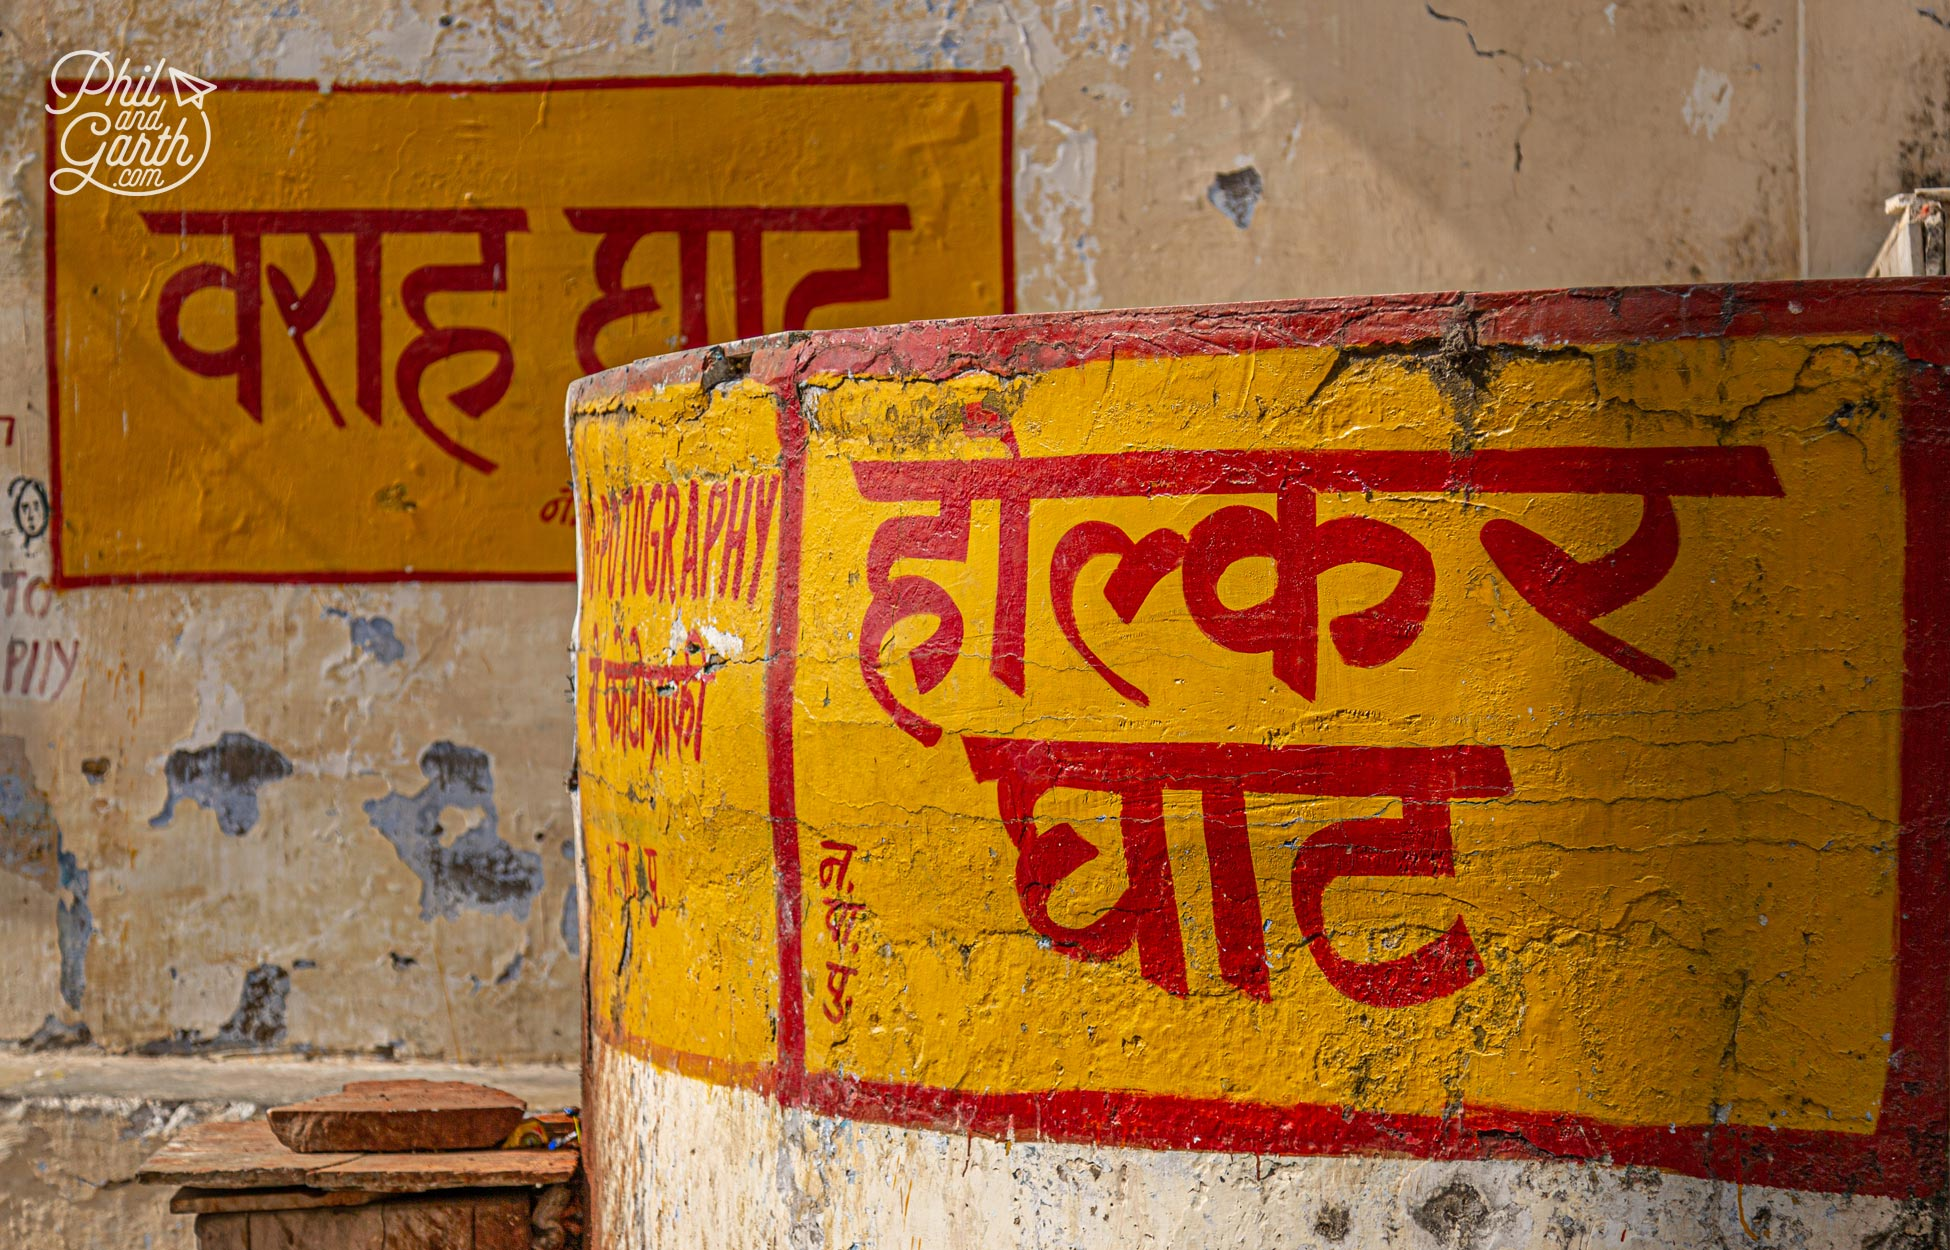 The ghat signs are hand painted in distinctive yellow and red colours